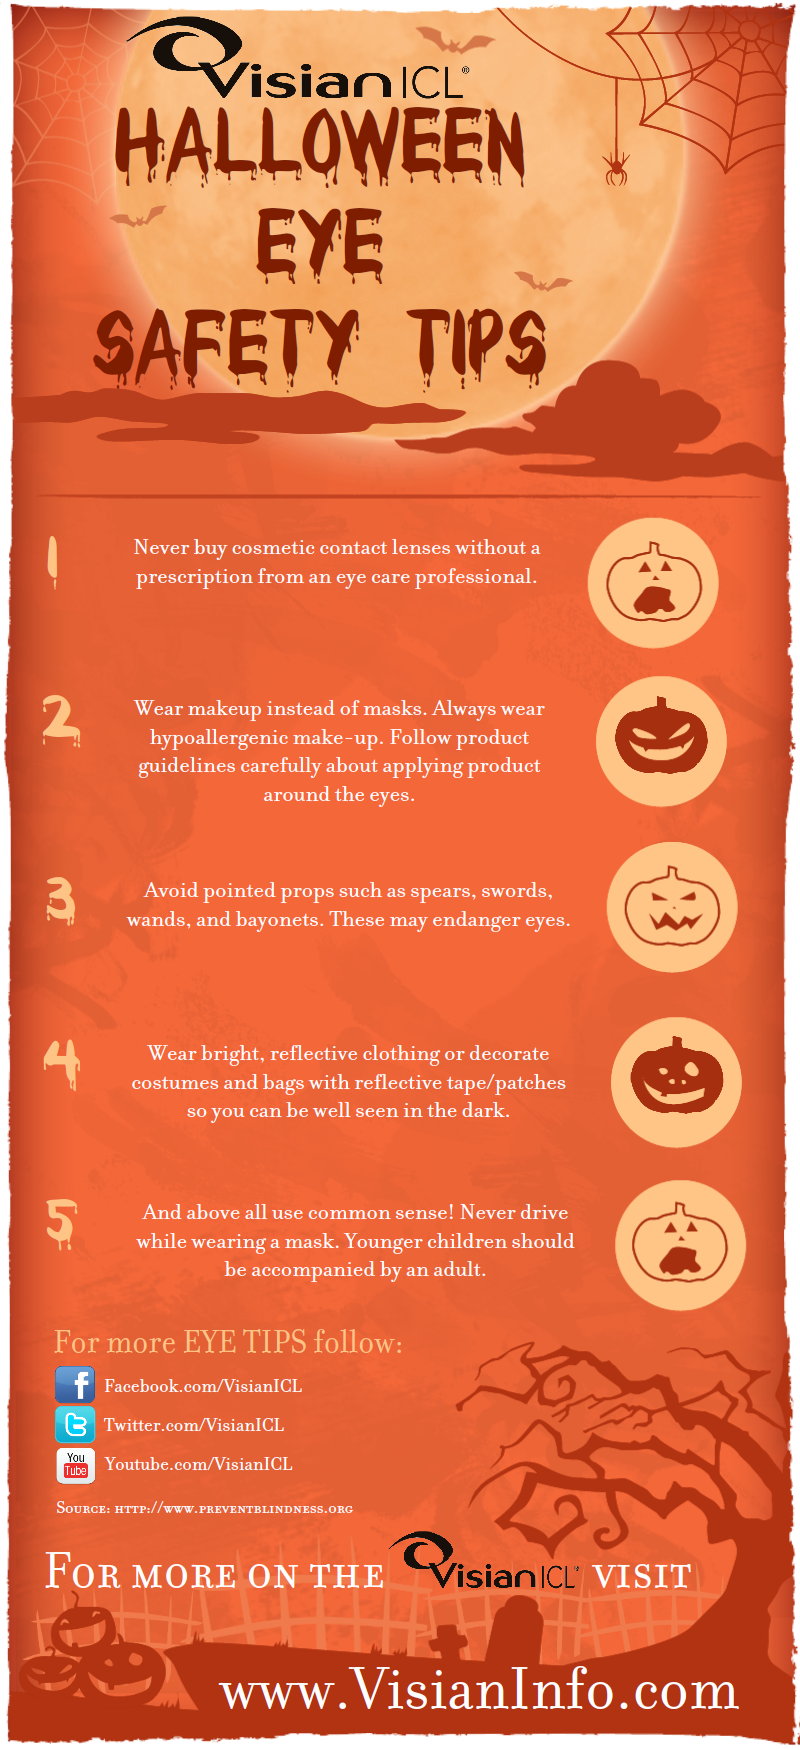 17 best images about eye holidays on pinterest safety glass health and diabetes - Halloween Tips